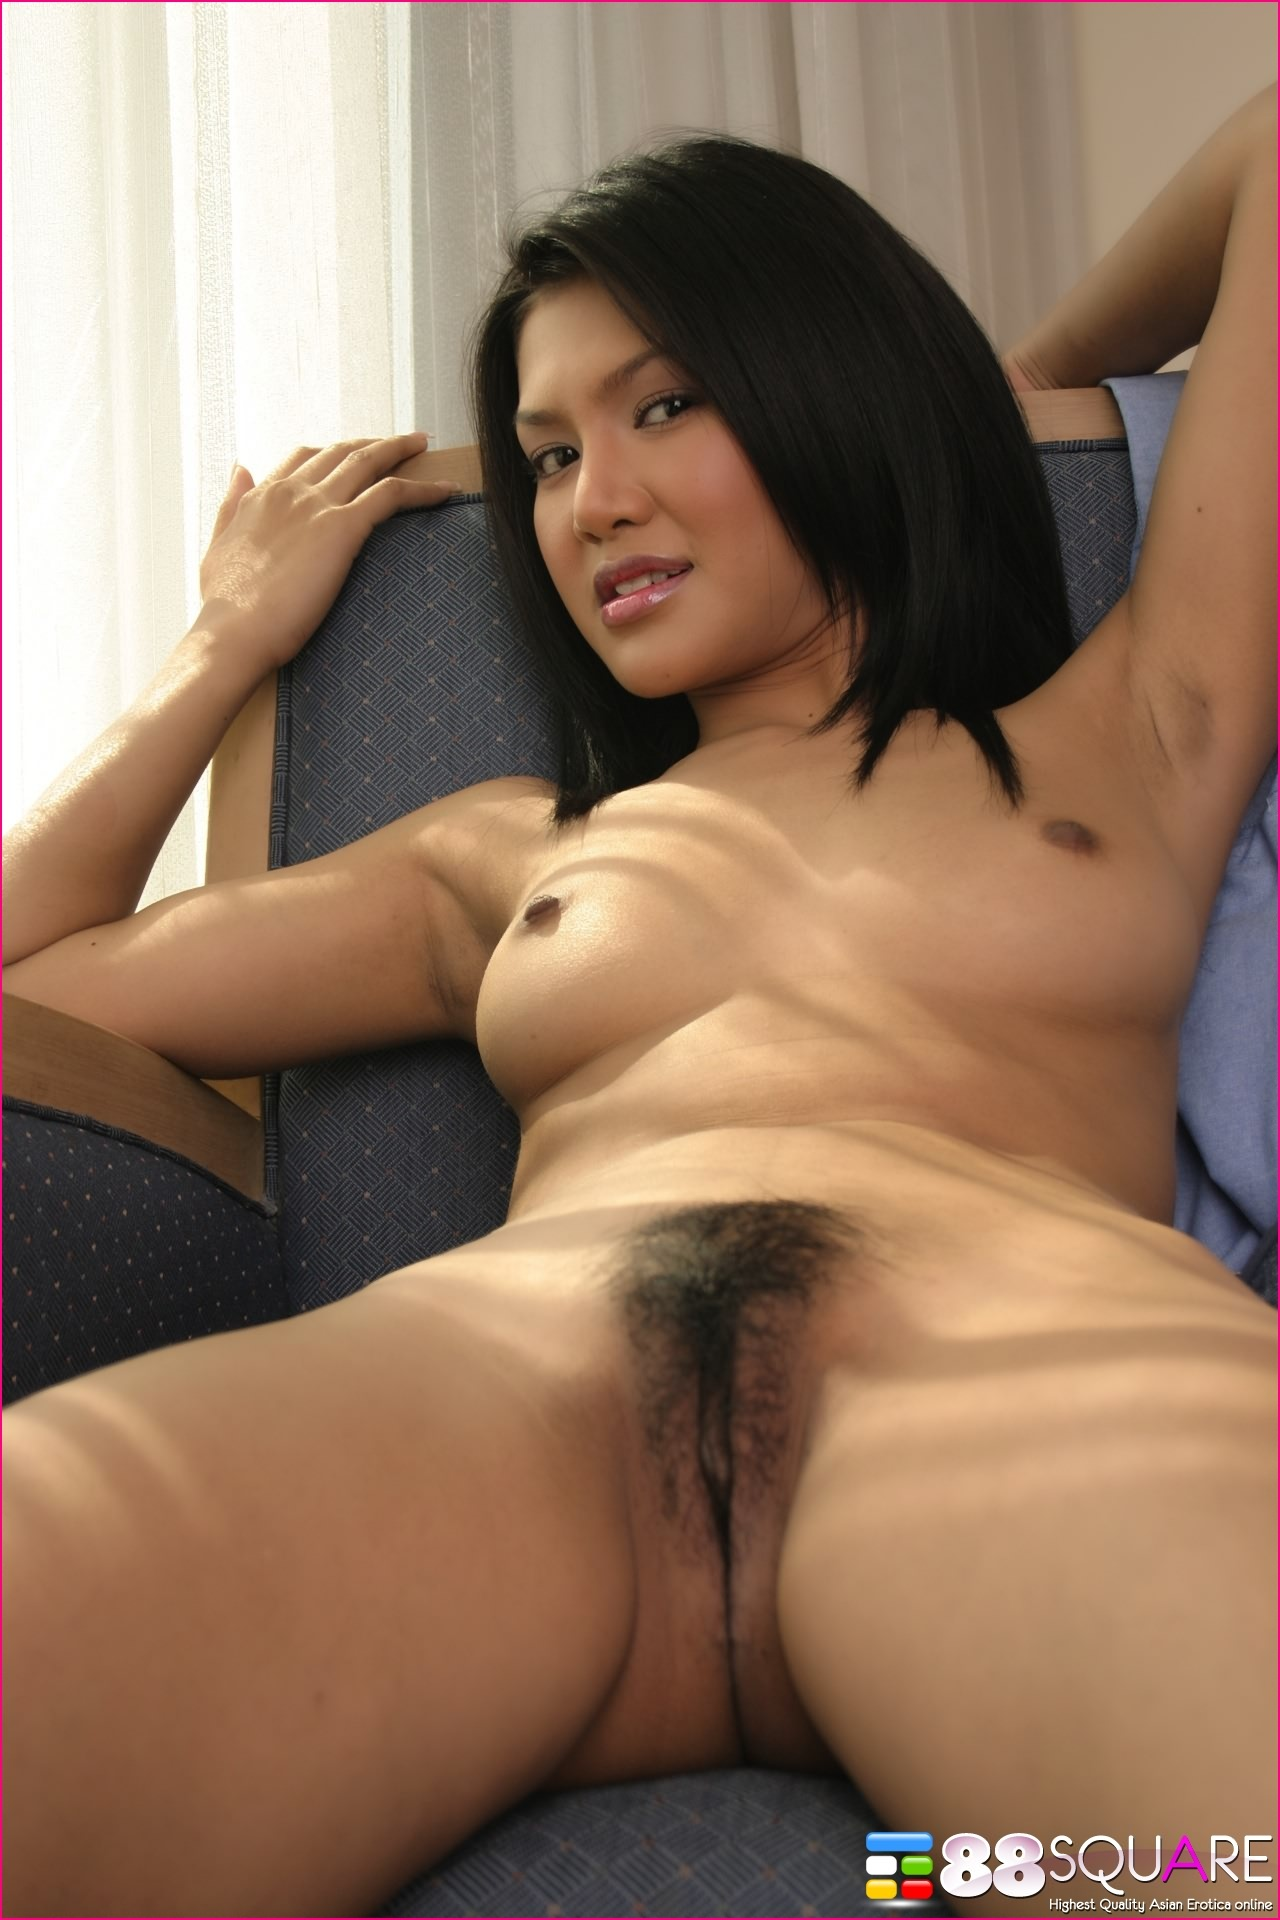 Sensual japanese ladies nude excellent answer